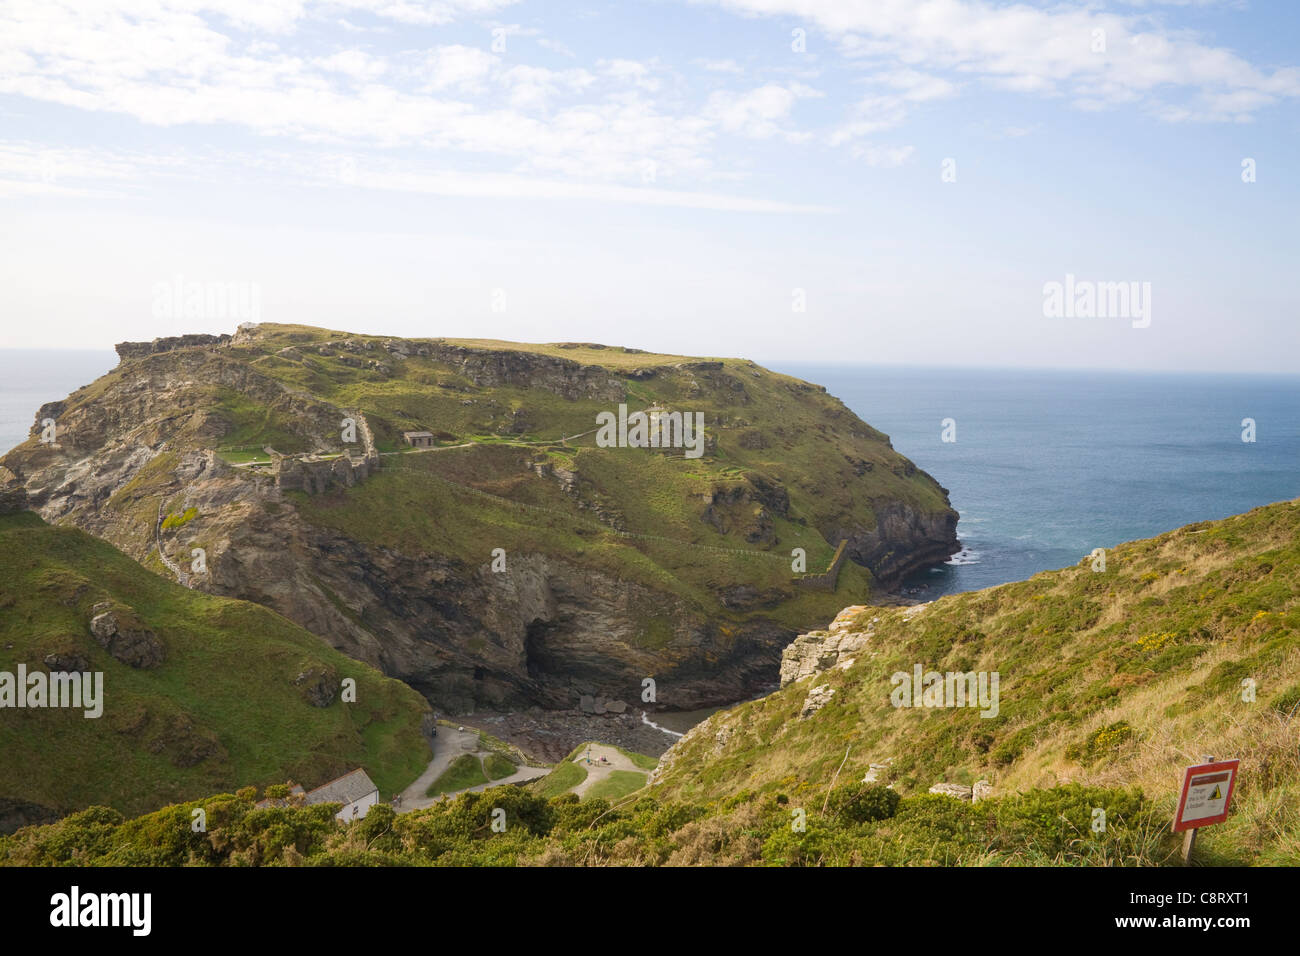 Tintagel Cornwall September Looking down on the ruins of the medieval fortifications of castle on headland of Tintagel - Stock Image